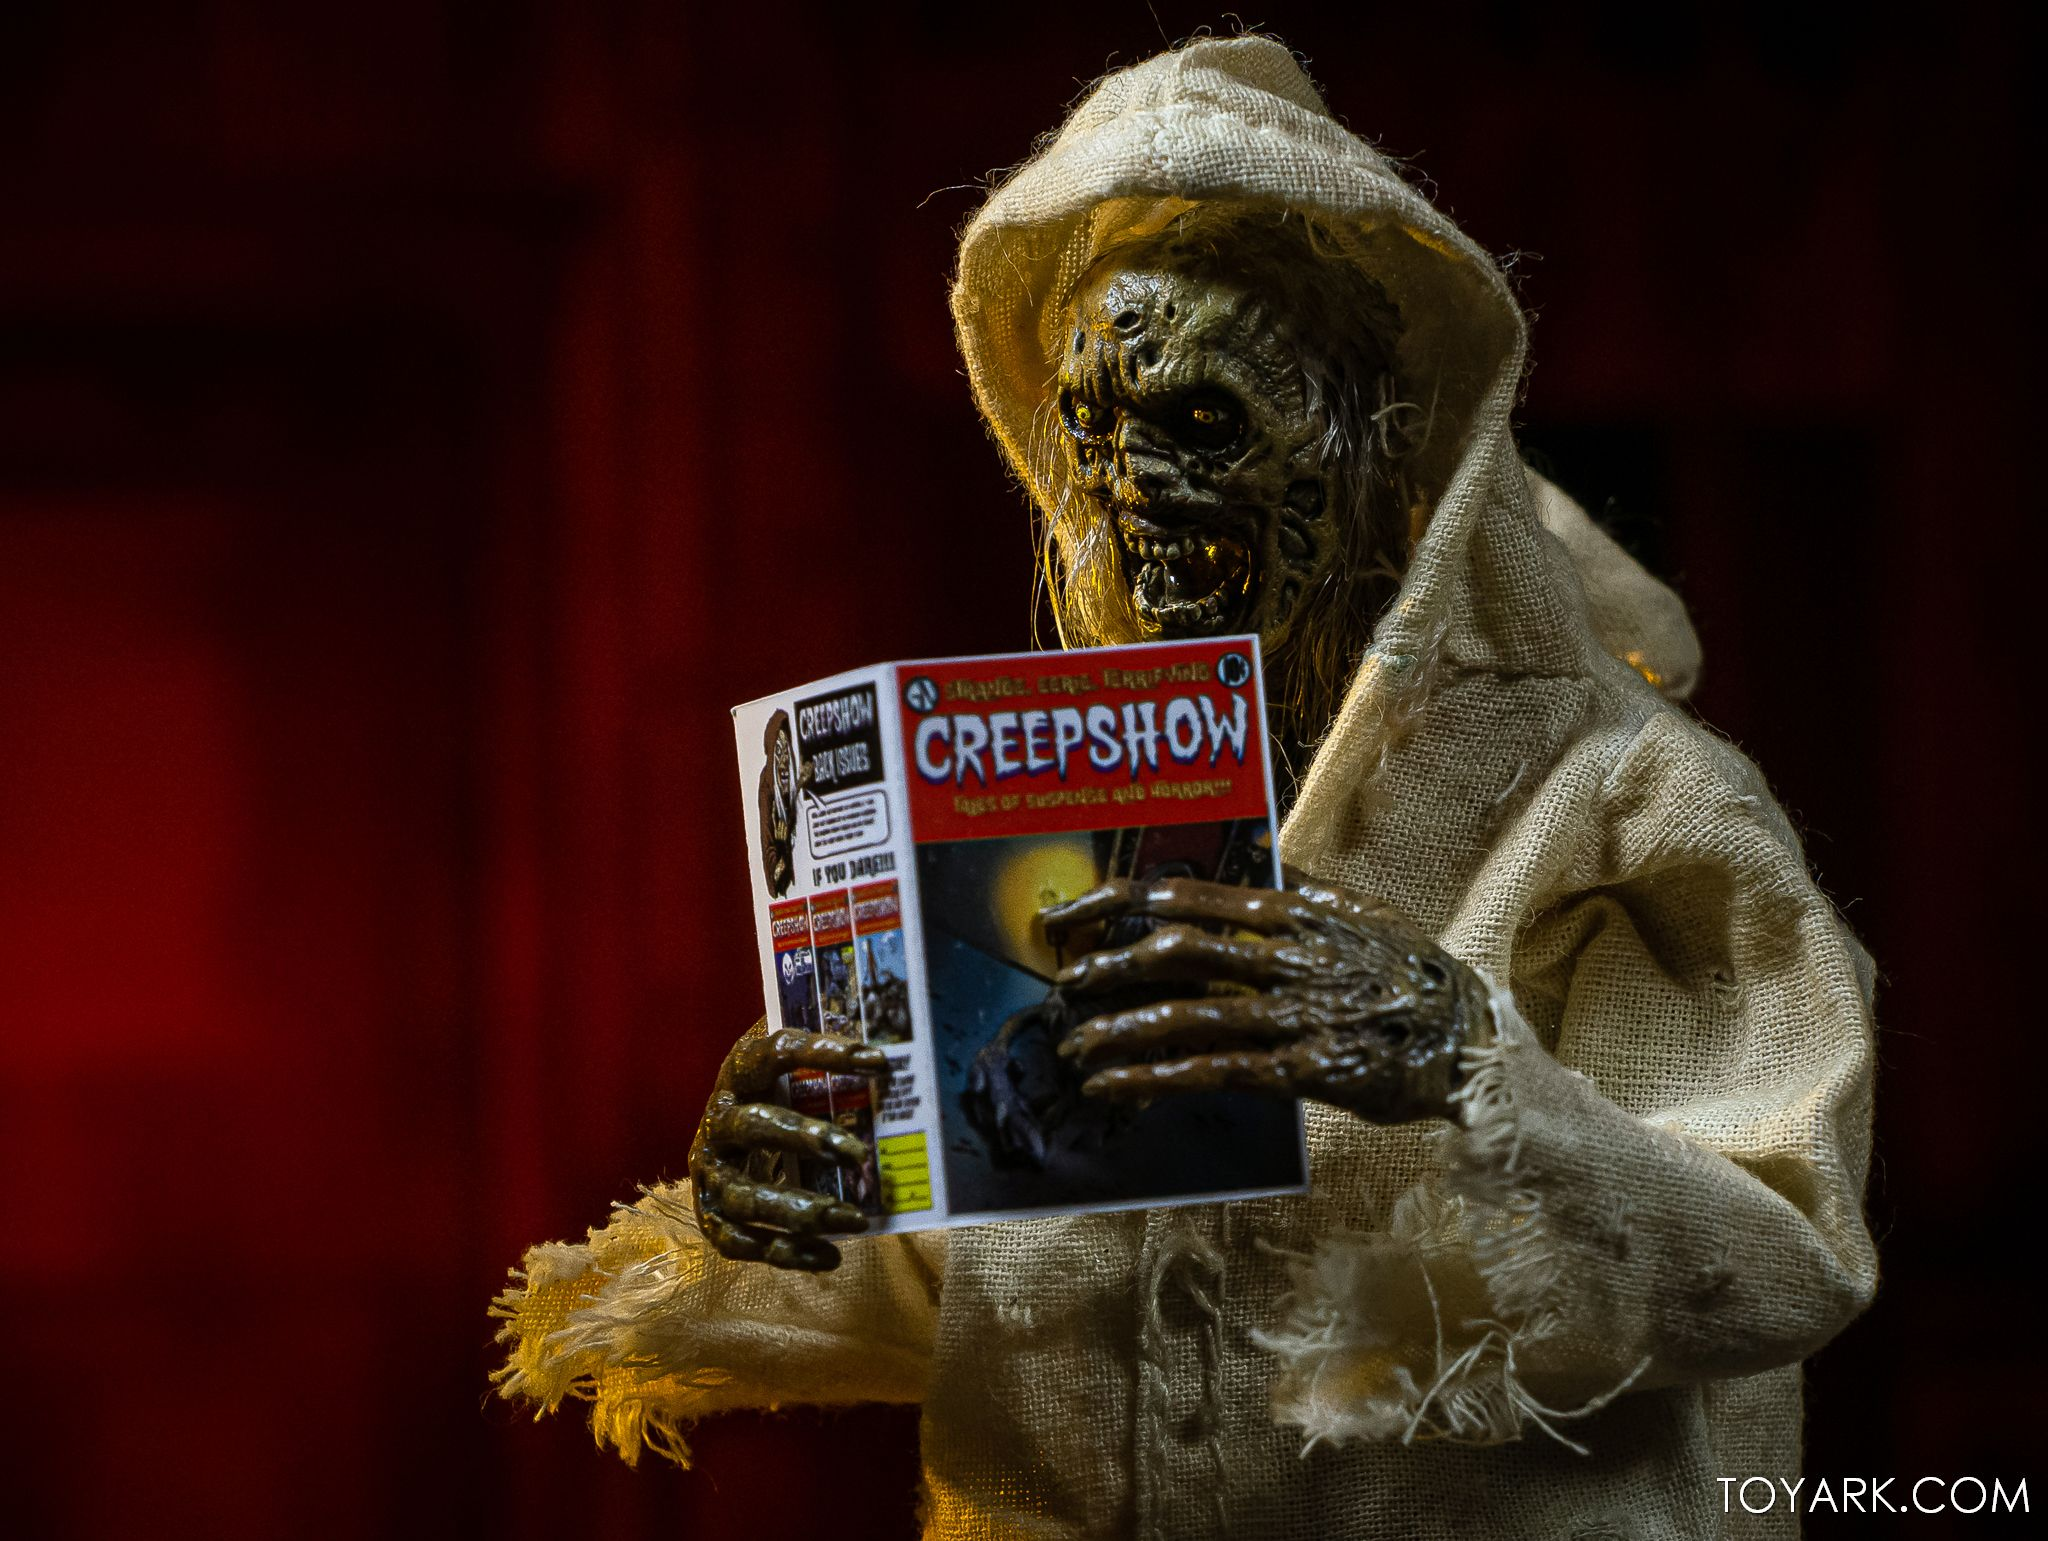 https://news.toyark.com/wp-content/uploads/sites/4/2020/09/Creepshow-The-Creep-Figure-023.jpg